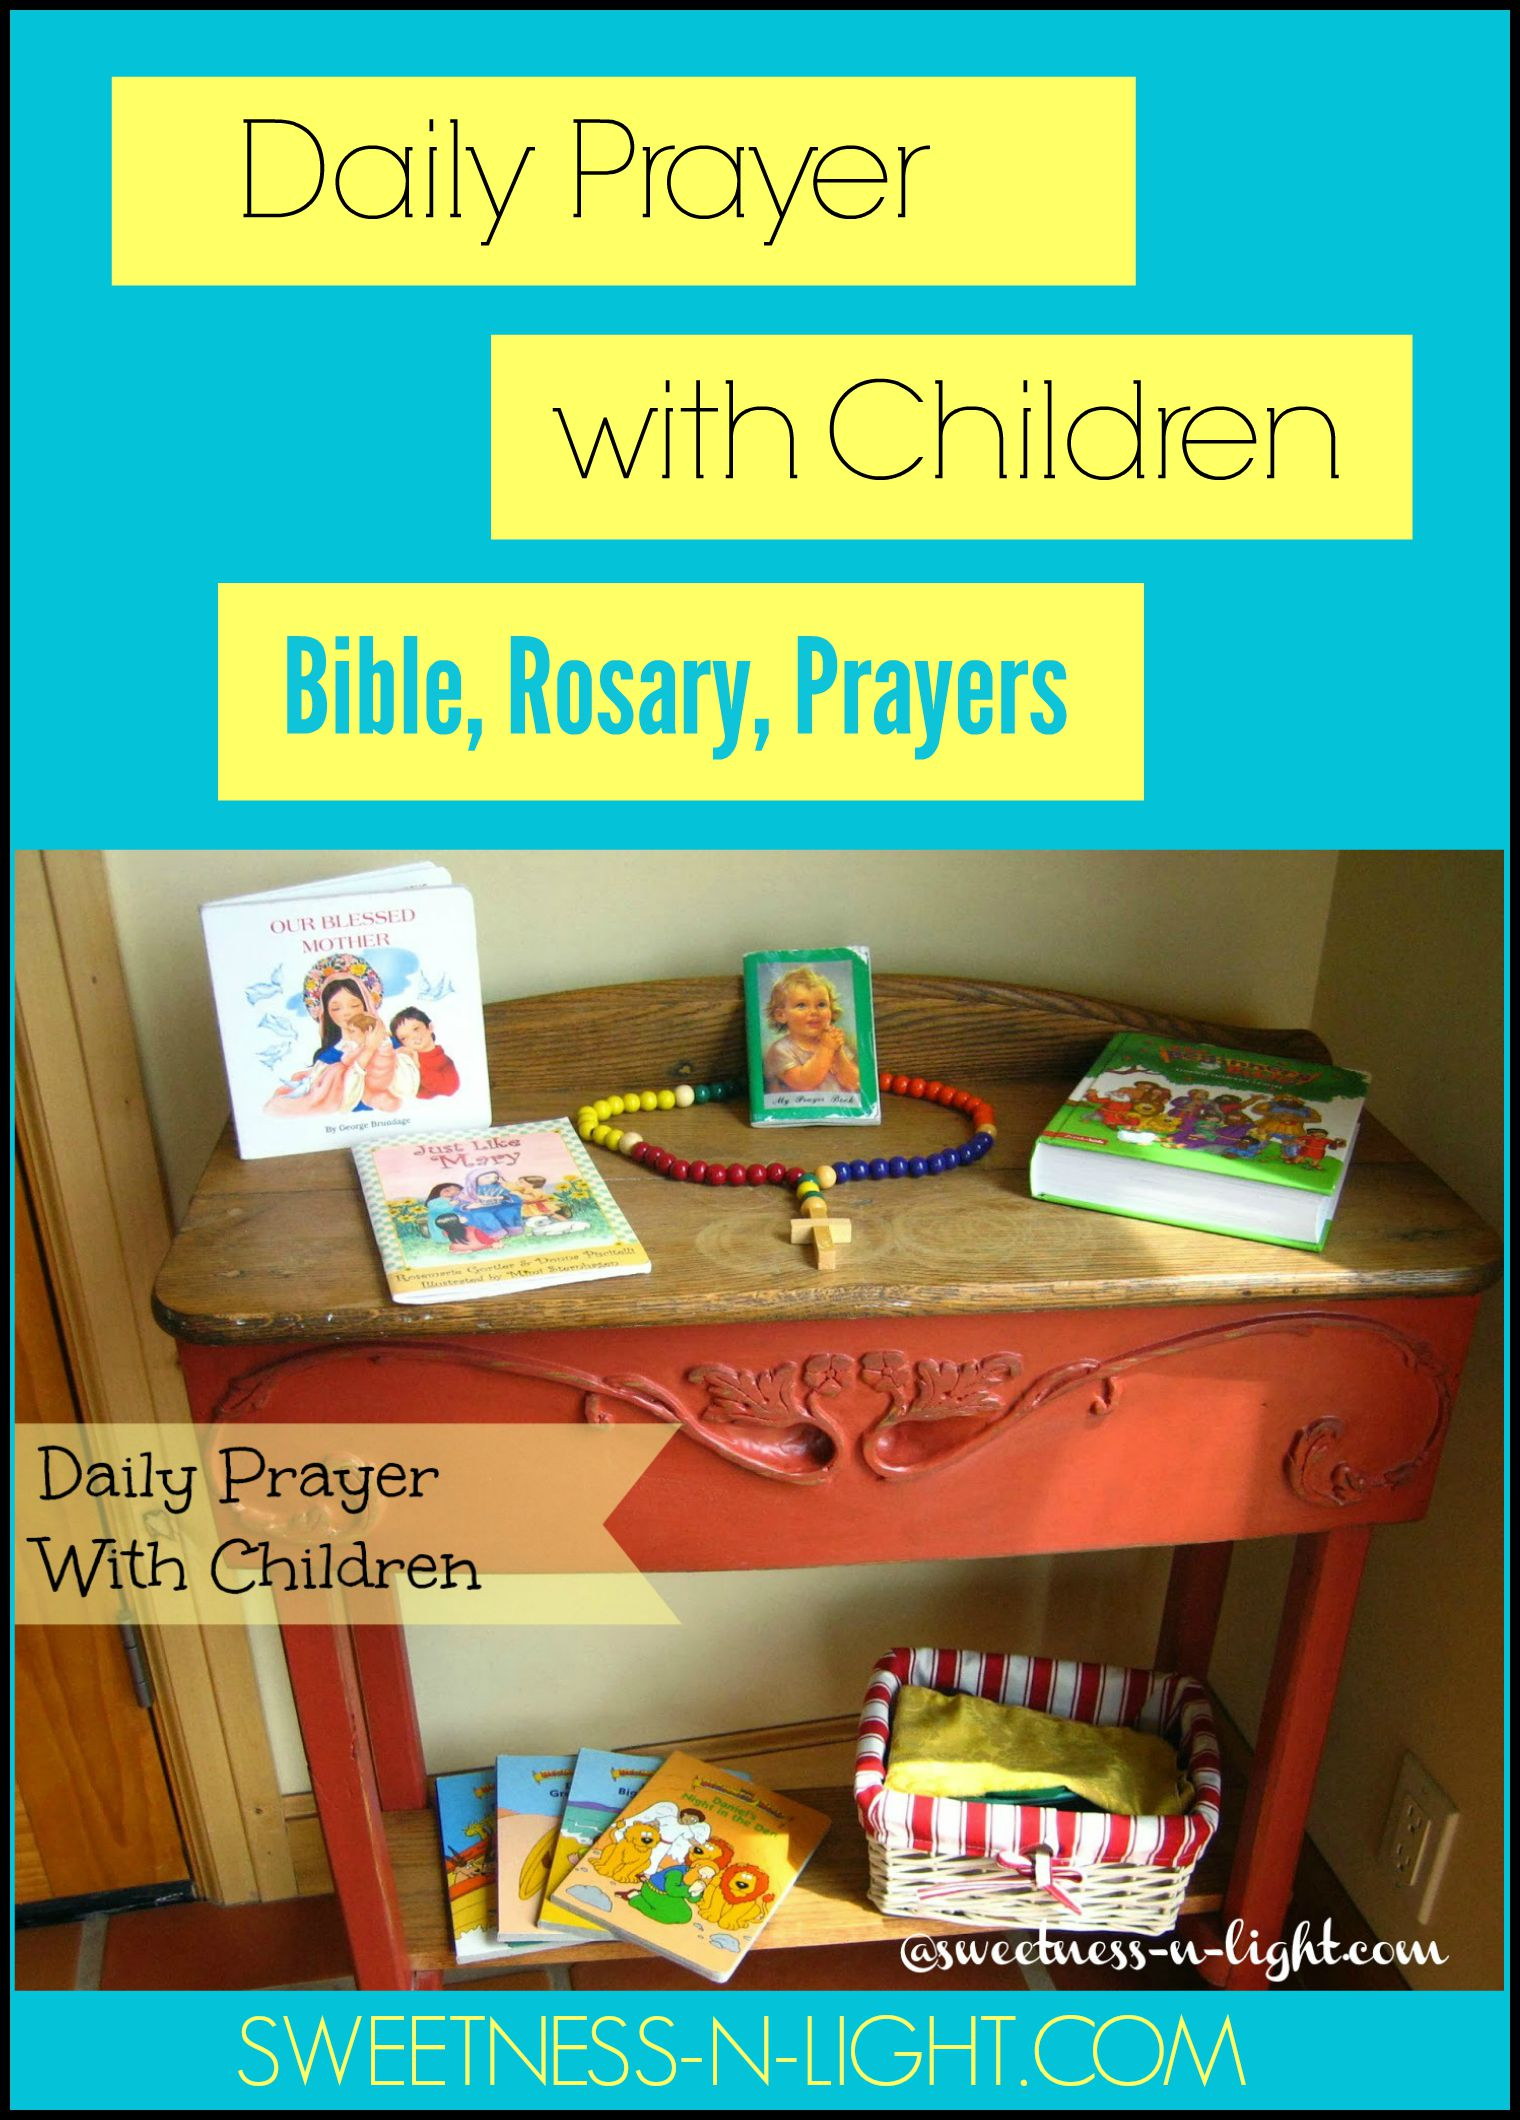 Daily Prayer With Children